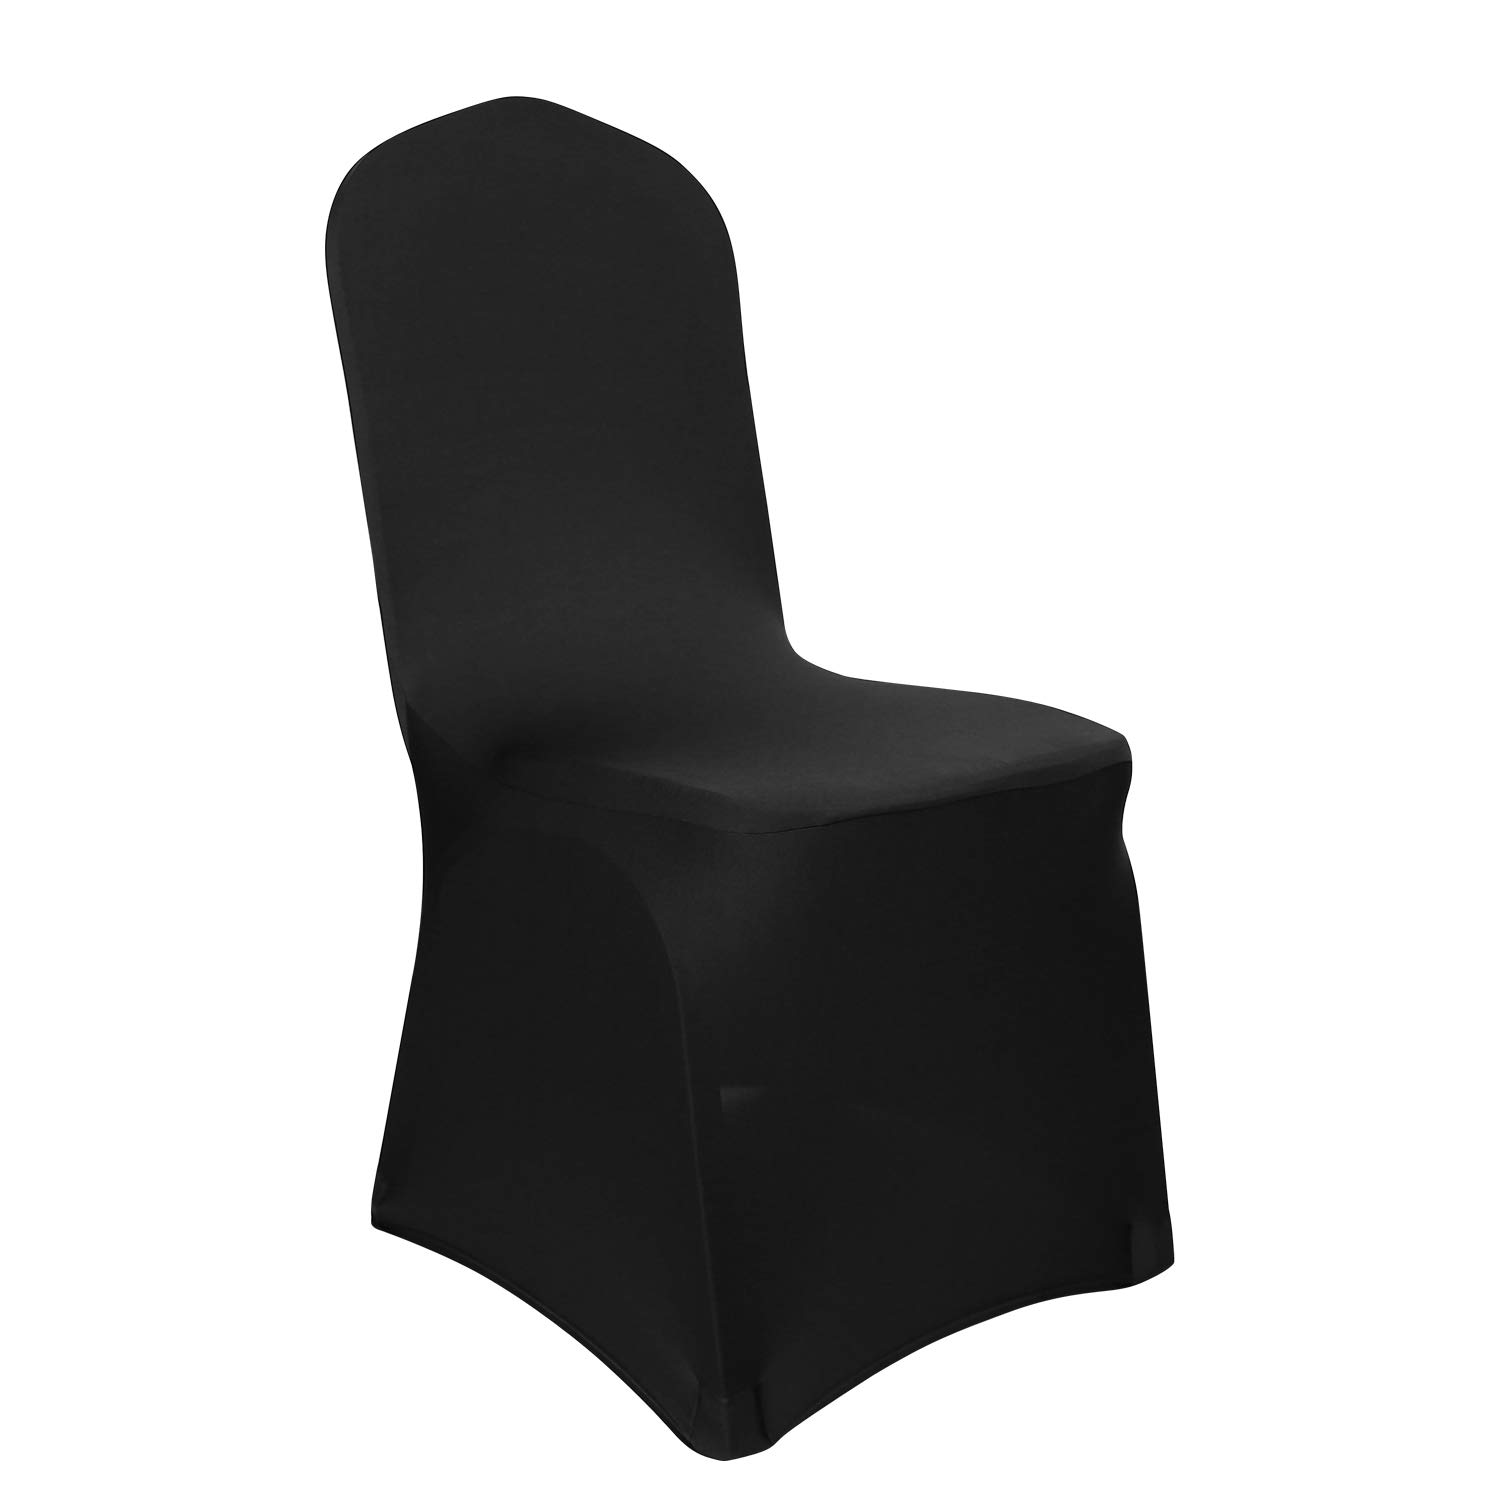 Deconovo Set of 4pcs Black Chair Covers Spandex Banquet Party Chair Covers for Living Room